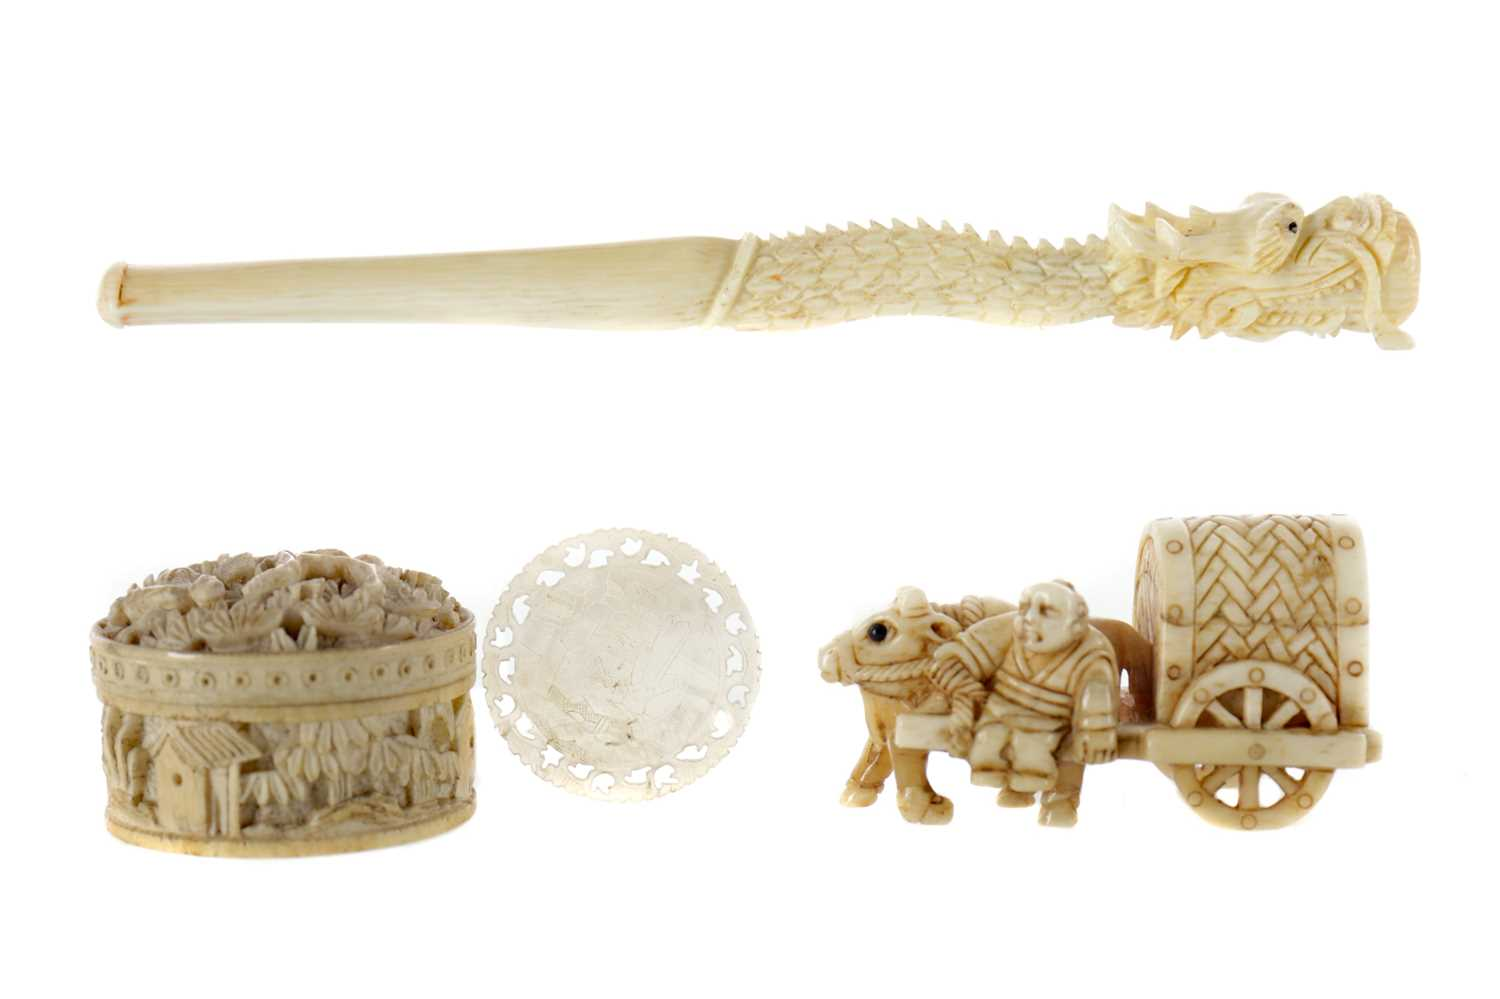 Lot 819 - AN EARLY 20TH CENTURY CHINESE IVORY CIGARETTE HOLDER AND OTHERS